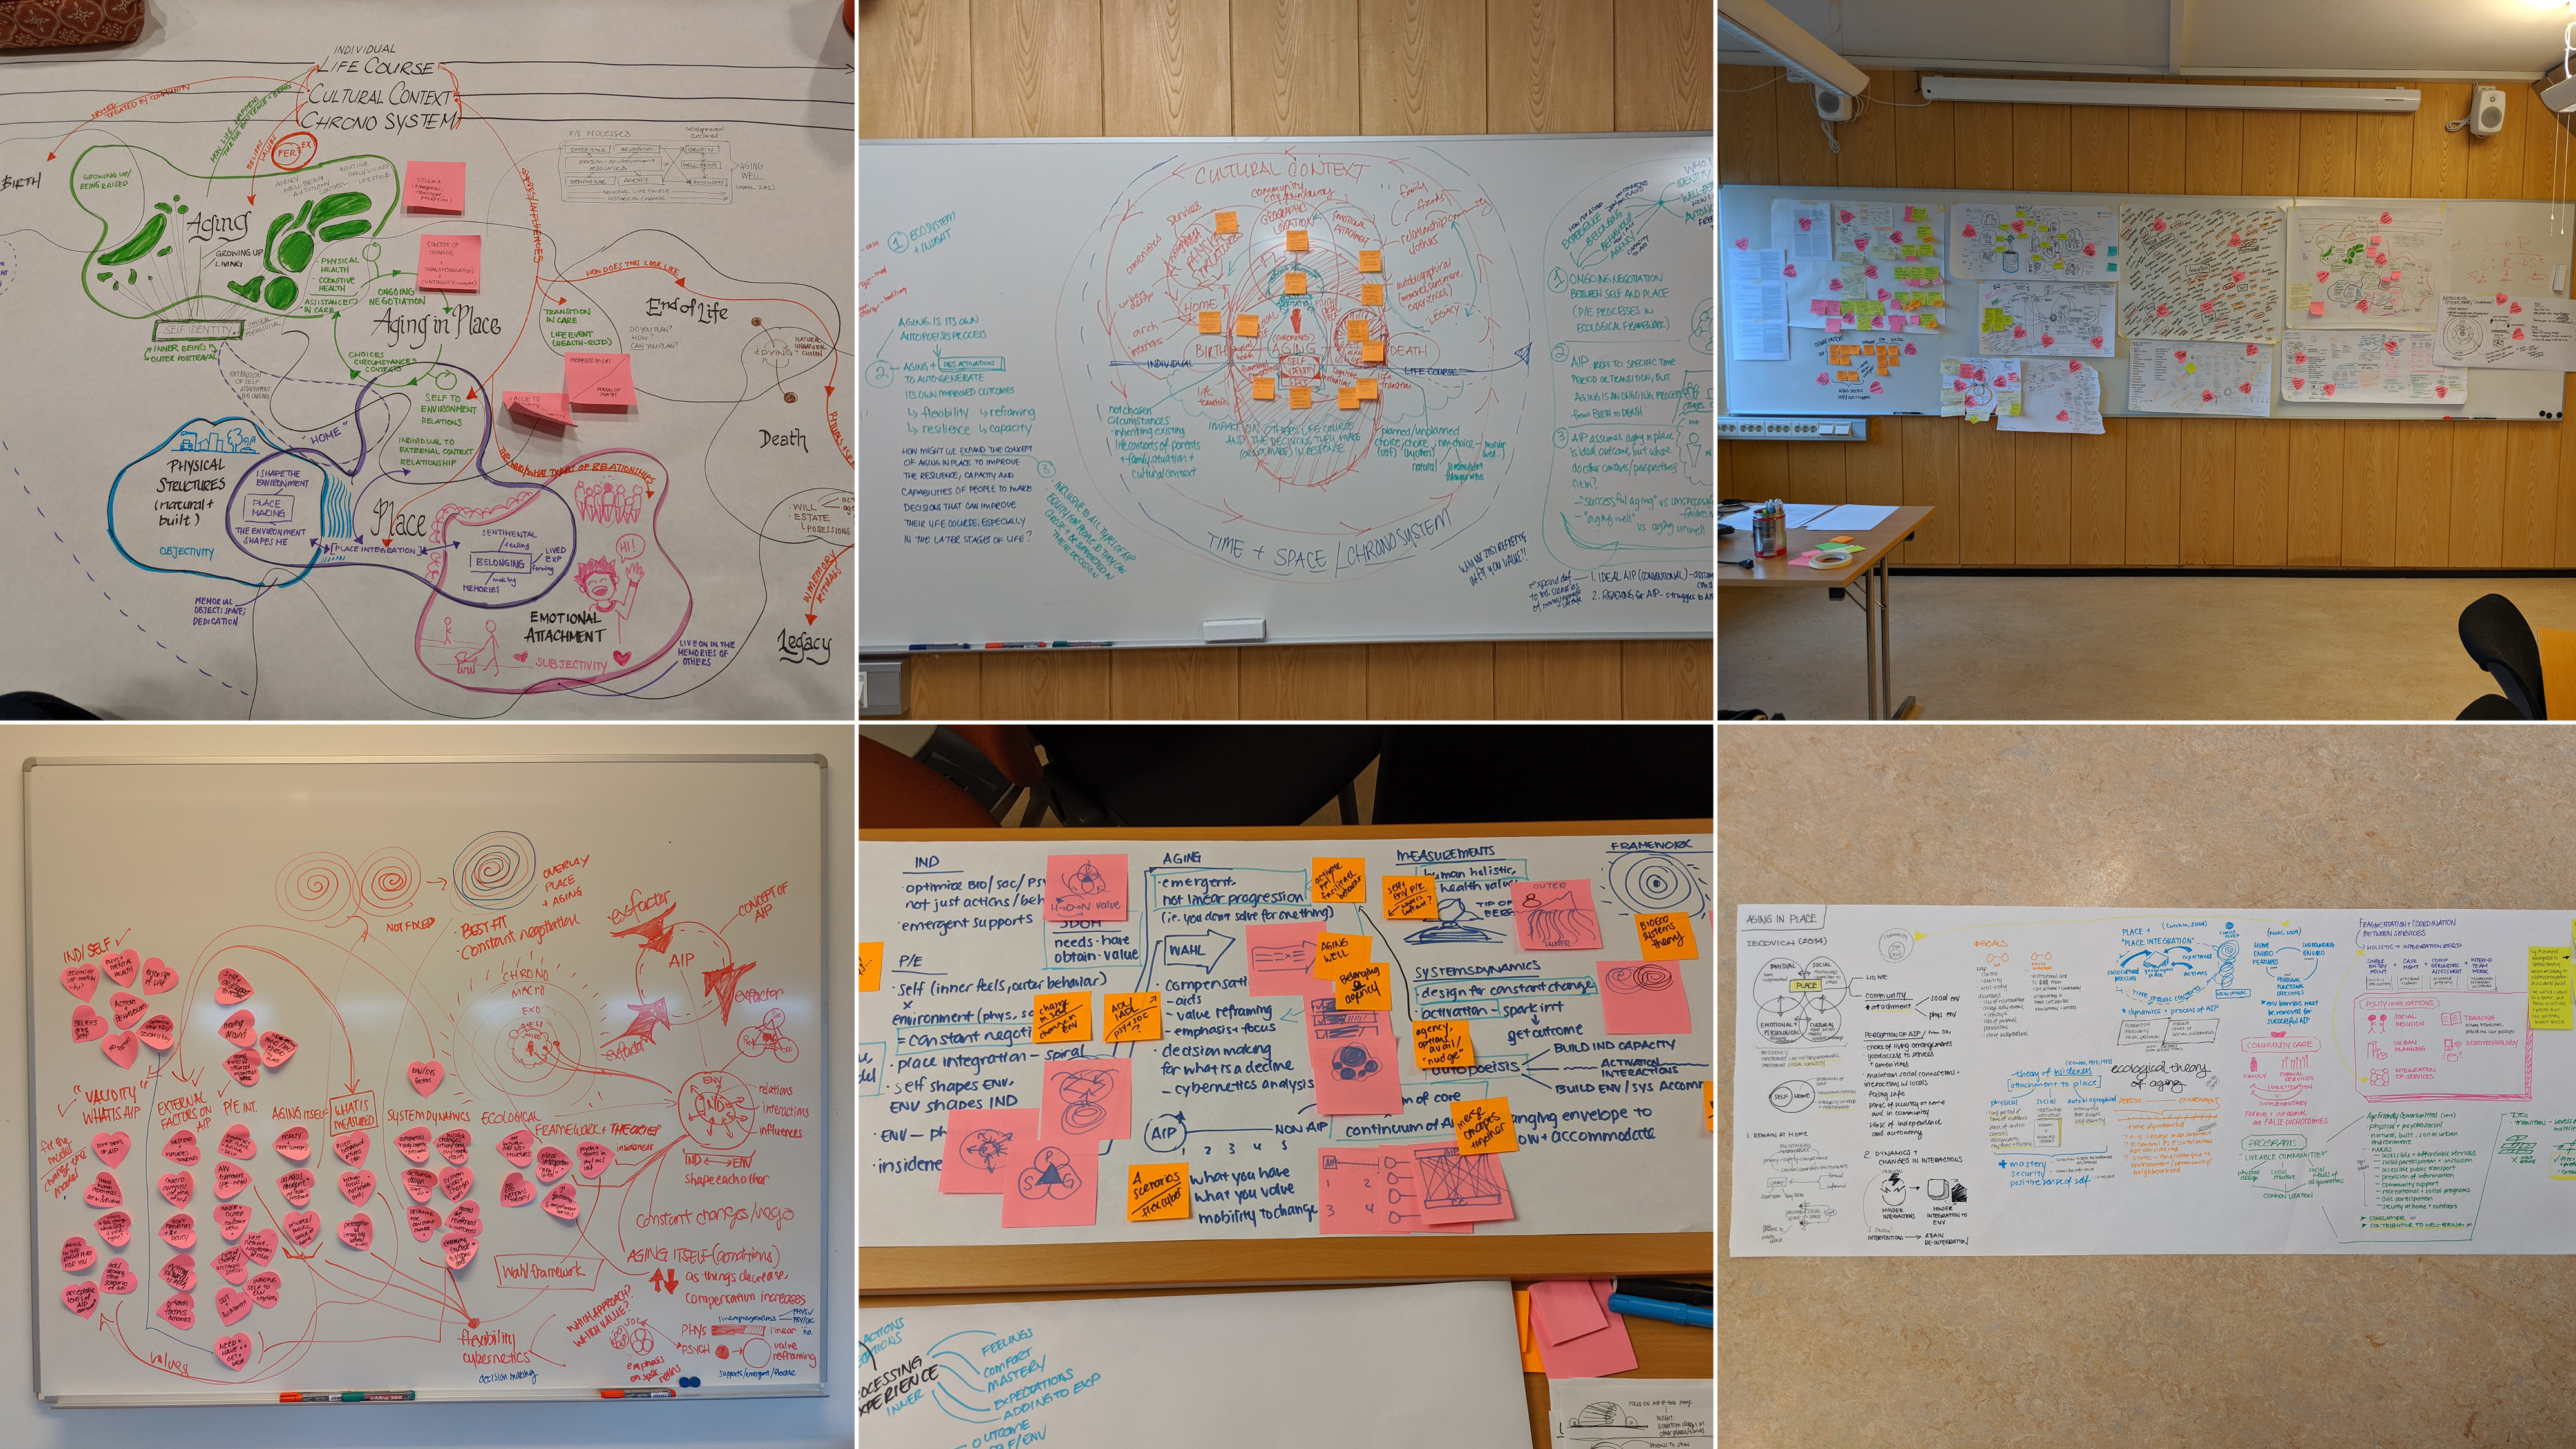 A collage of 6 images showing my research work on paper, whiteboards and sticky notes.